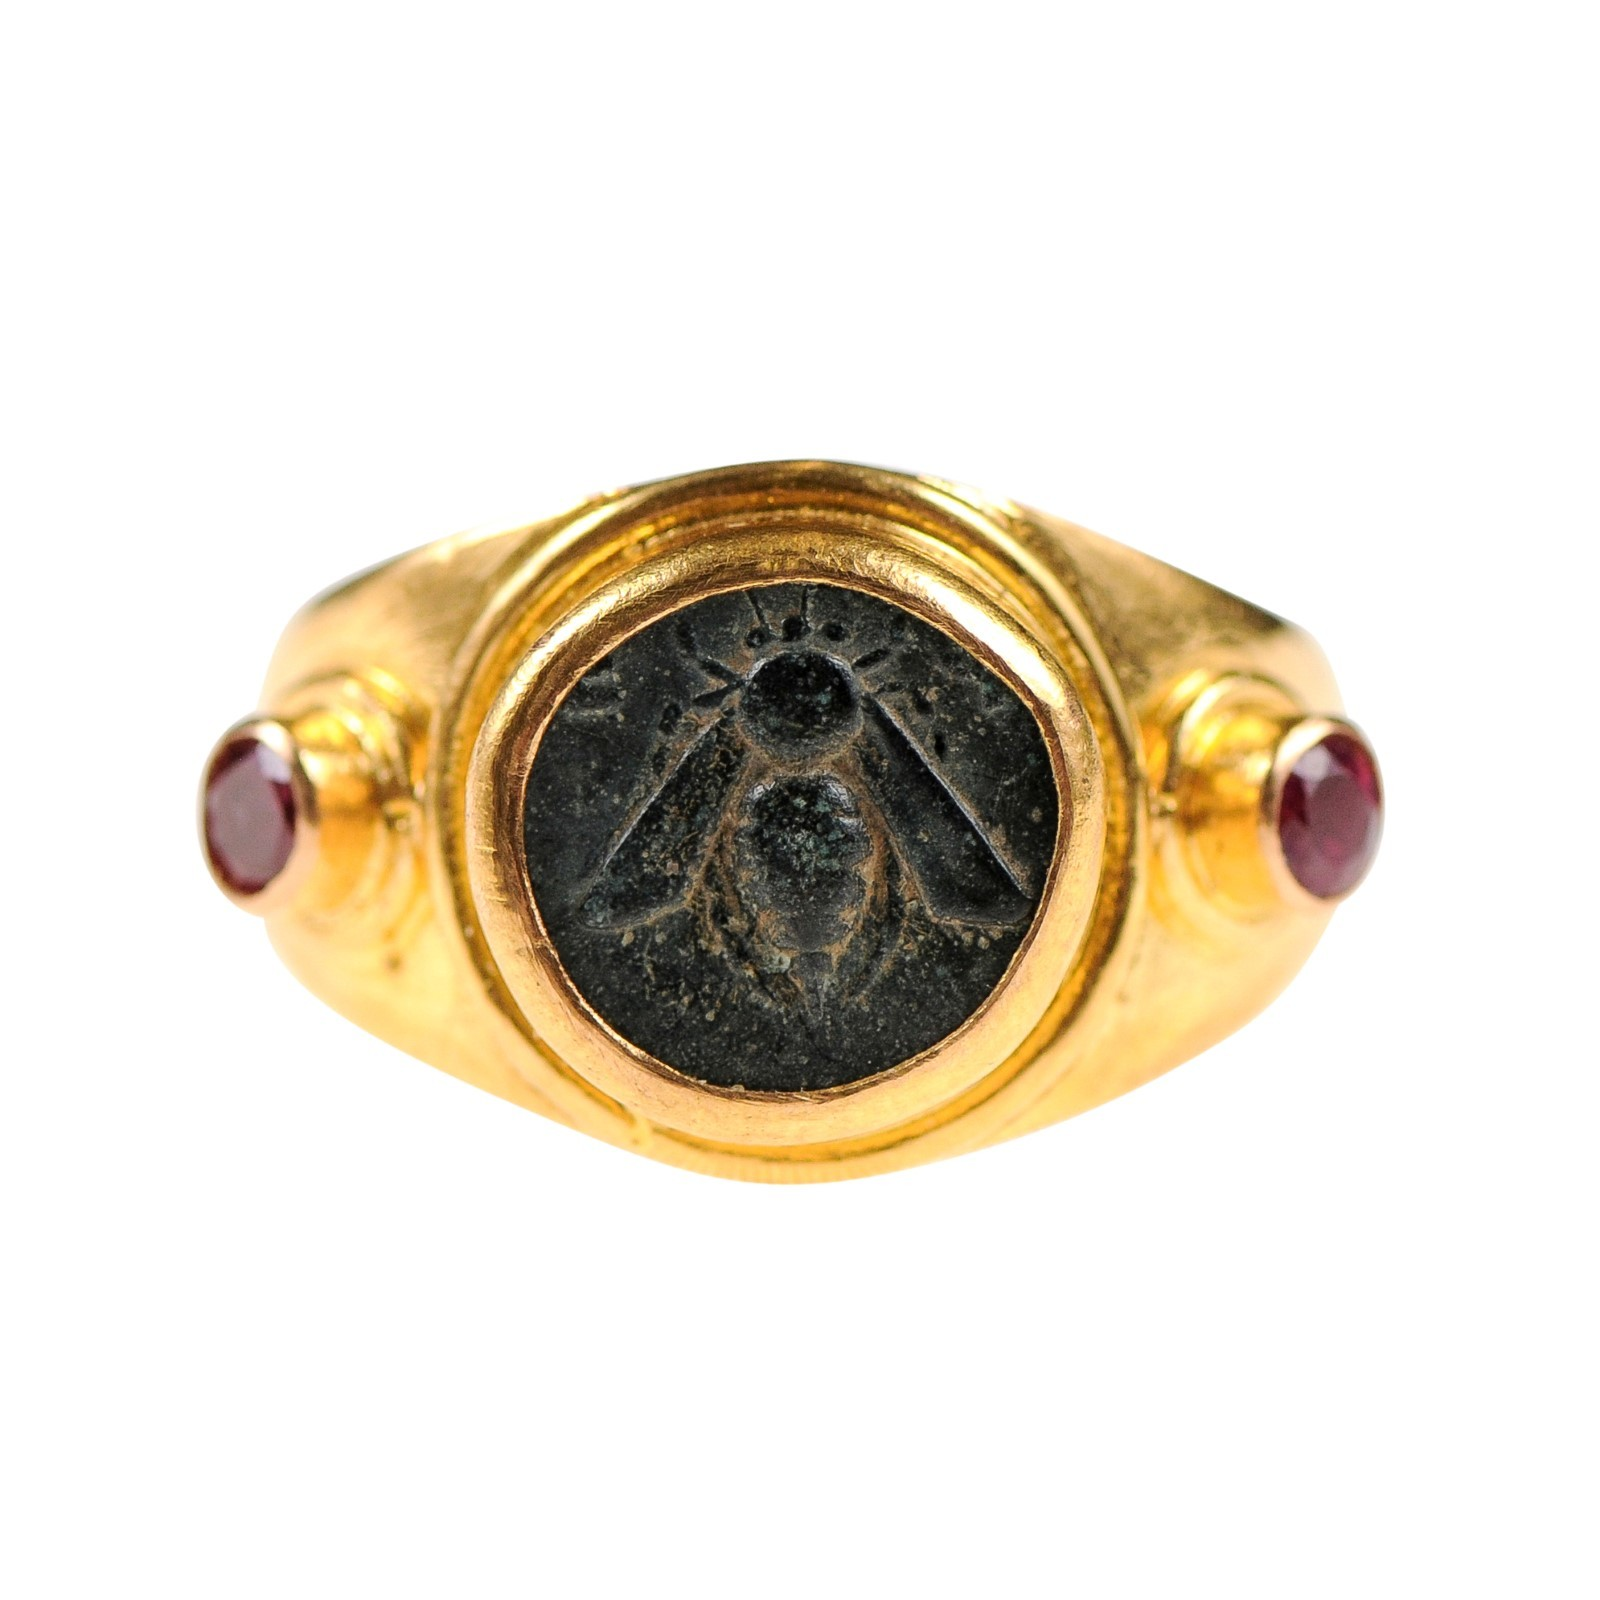 Ancient Bee Coin in 22k Ring w/Rubies